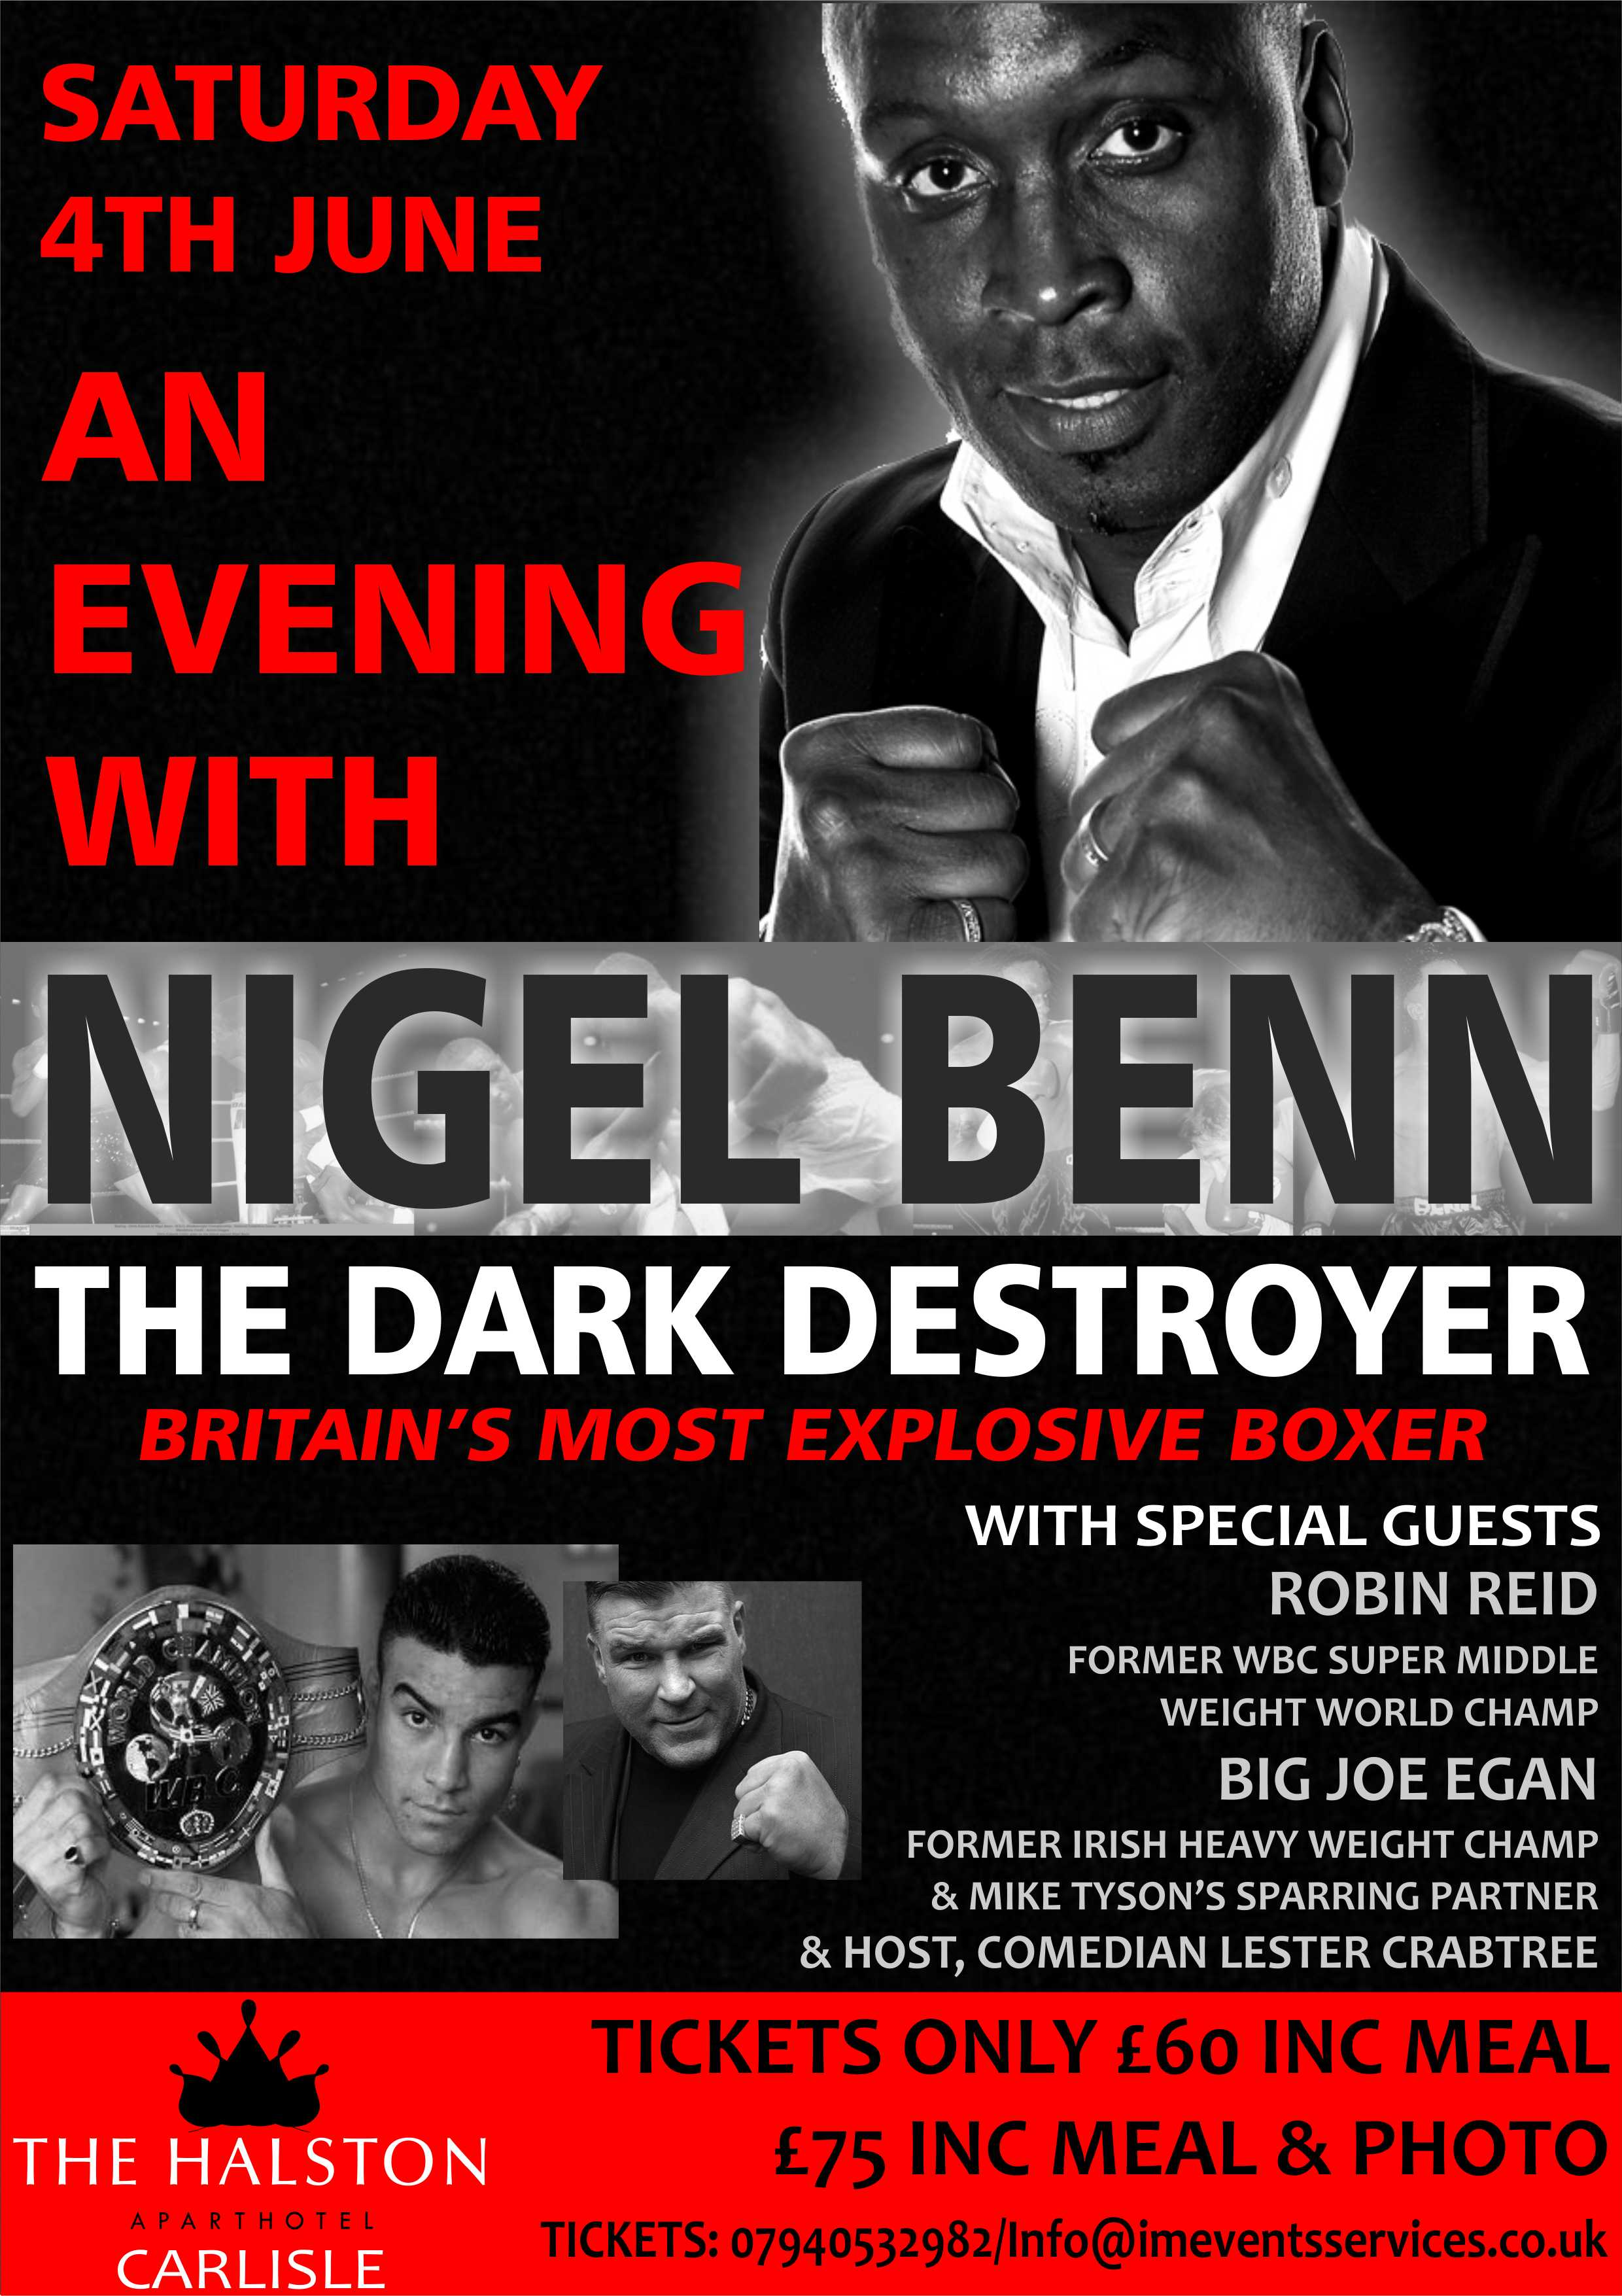 An Evening with Nigel Benn